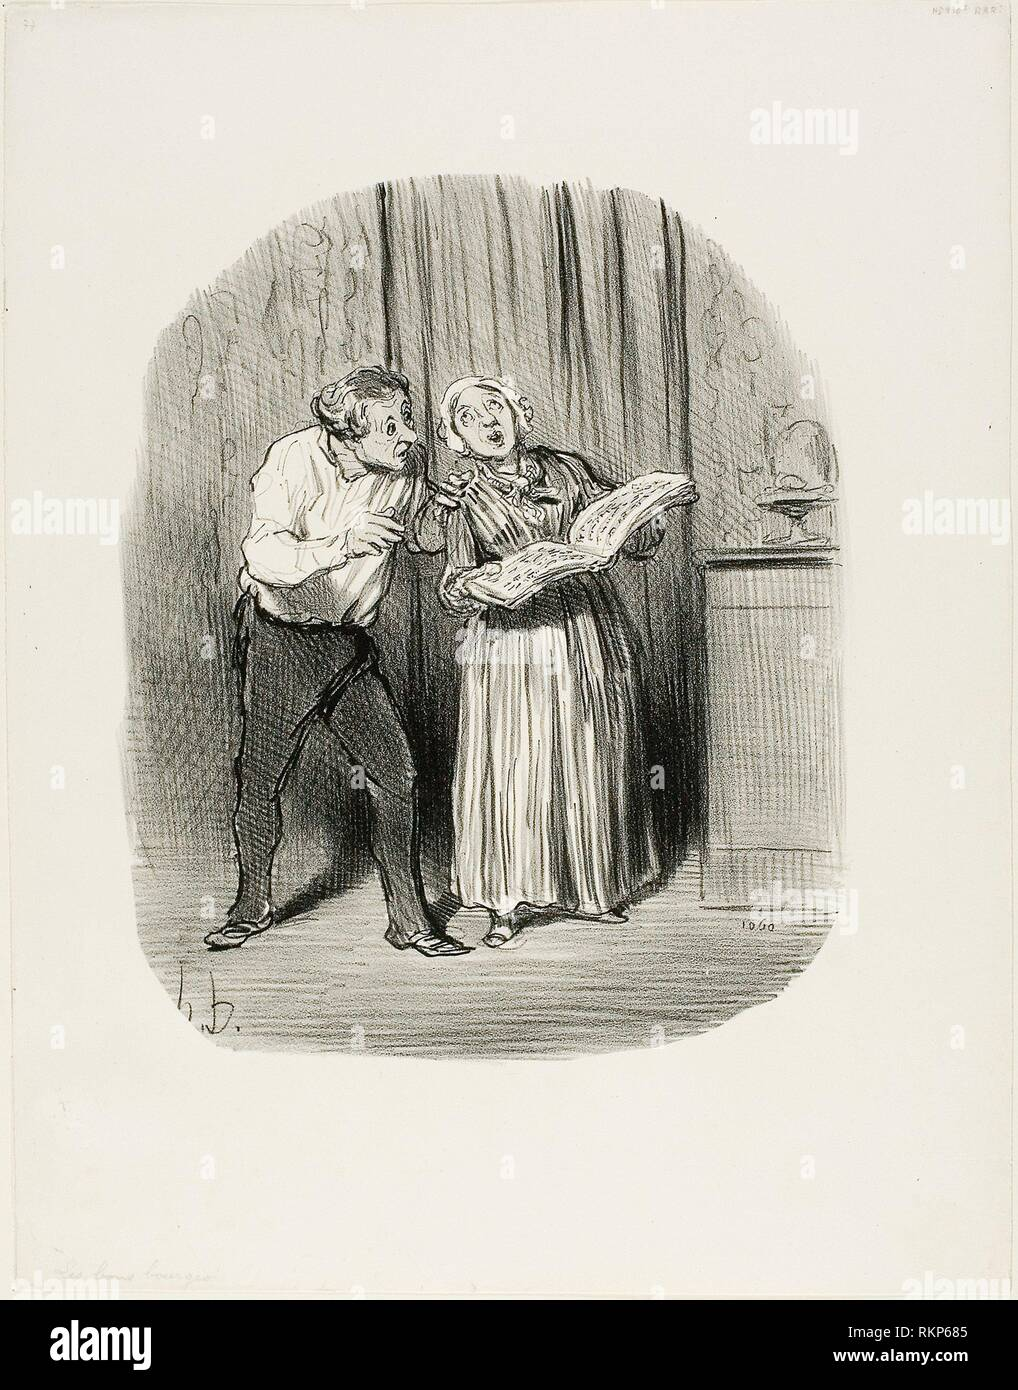 Disadvantage of Marrying a Woman with a So-Called Artistic Talent, plate 77 from Les Bons Bourgeois - 1847 - Honoré Victorin Daumier French, - Stock Image